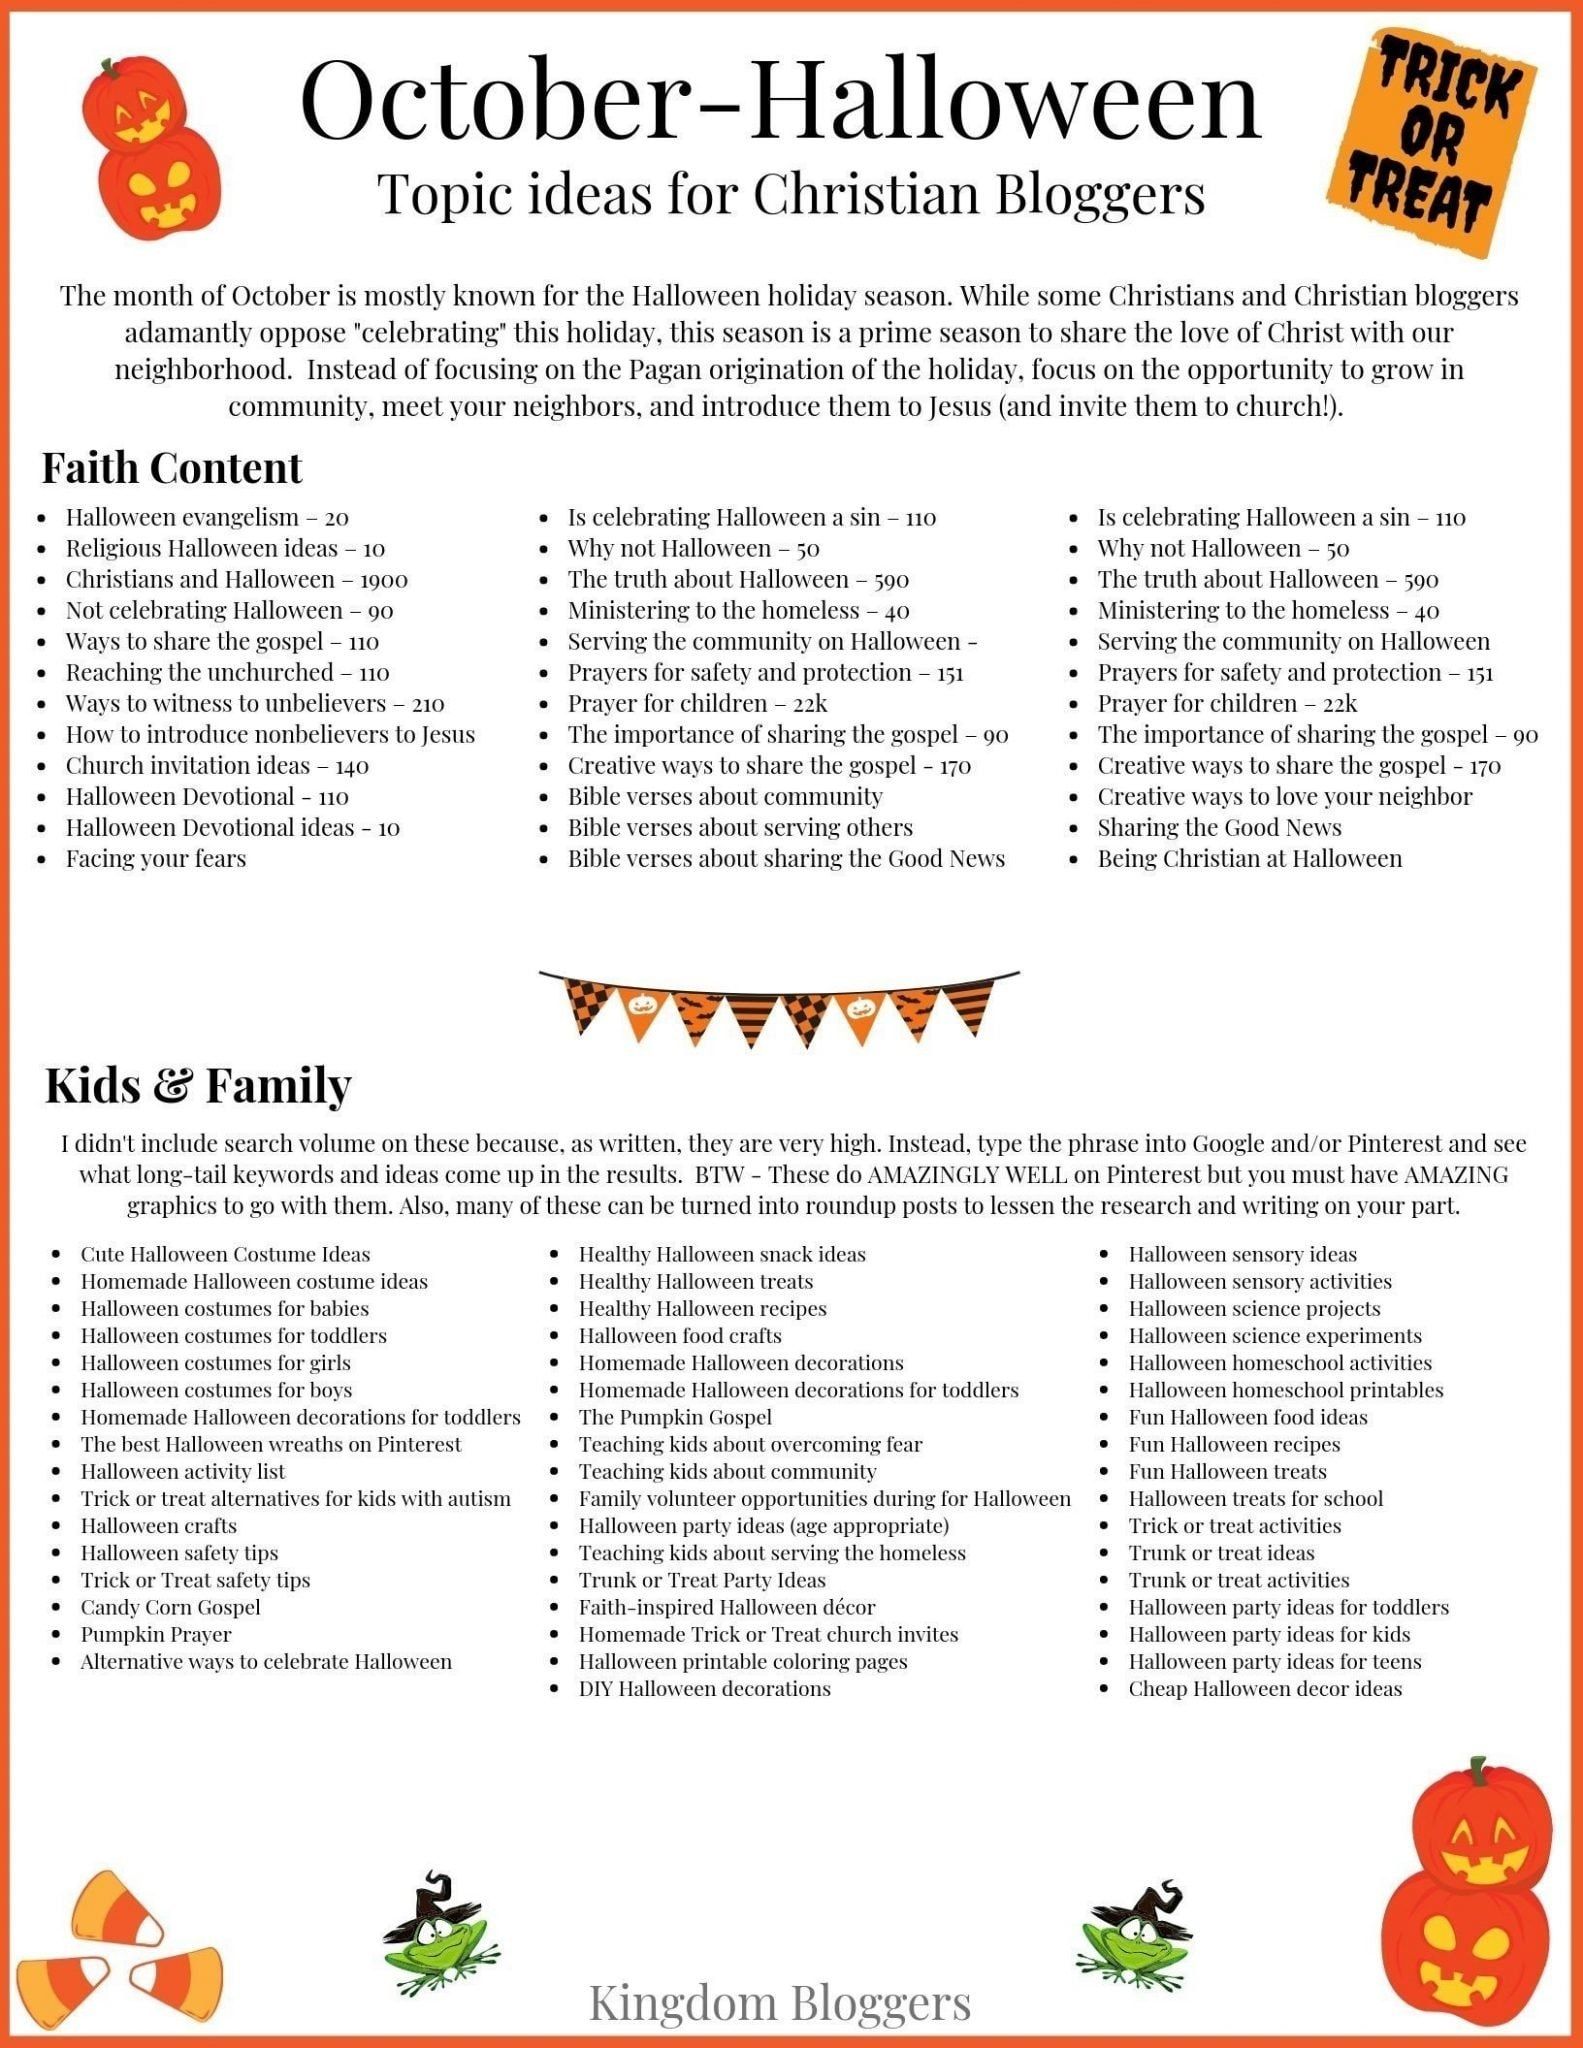 image relating to Pumpkin Gospel Printable called 85+ Oct Web site Write-up Suggestions for Christian Bloggers - Kingdom